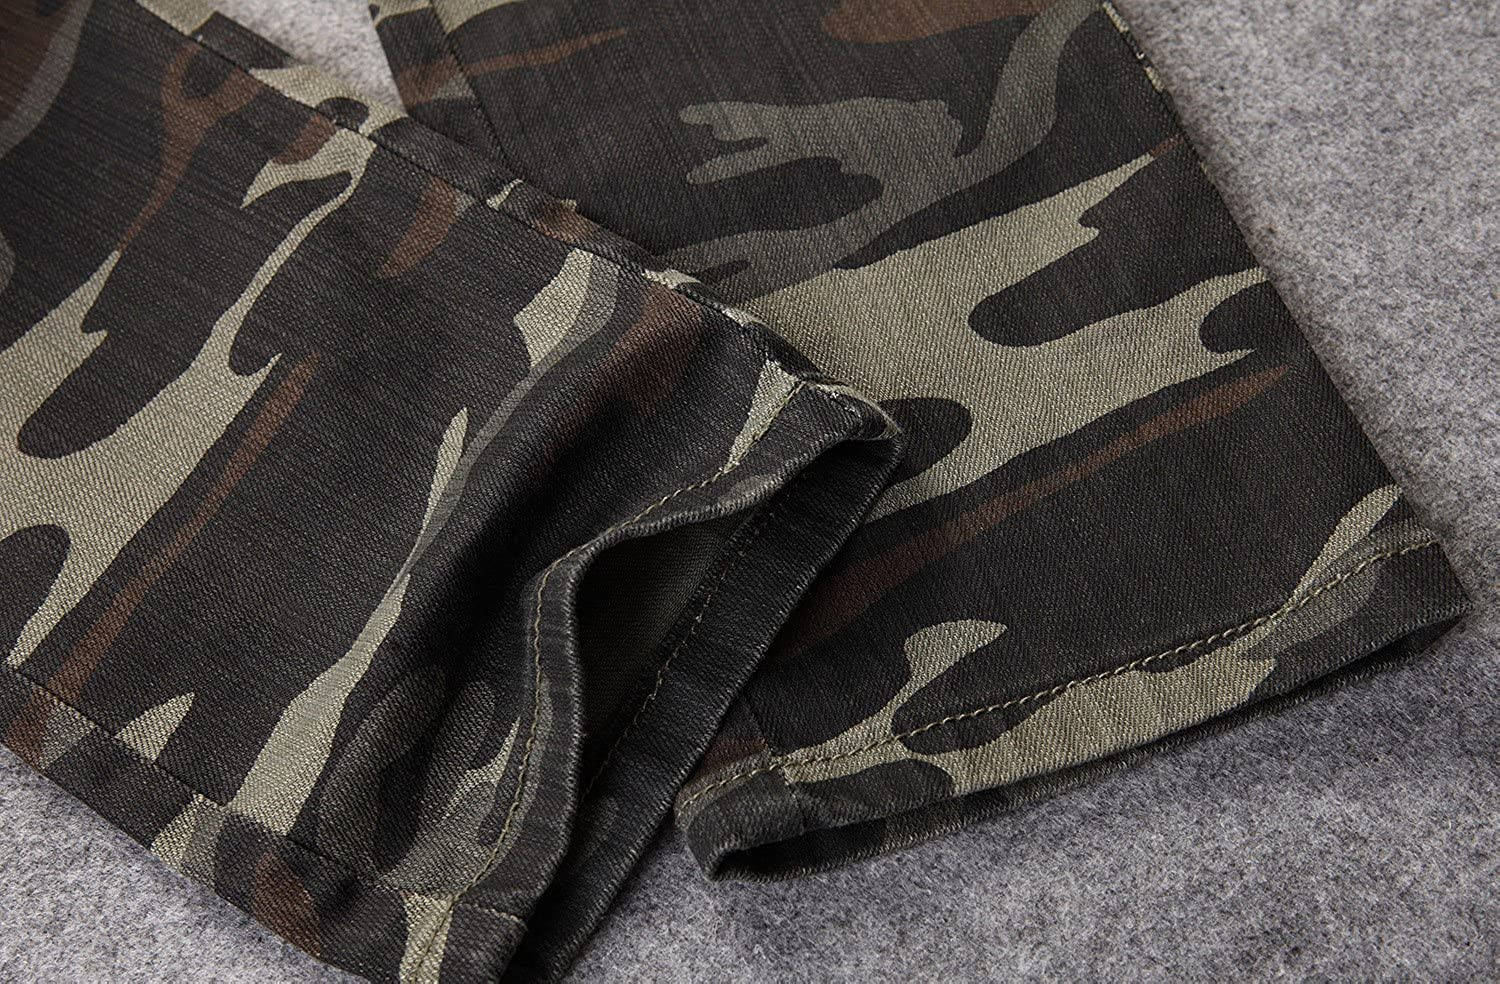 Allonly Mens Stylish Casual Slim Fit Straight Leg Camouflage Jeans Pants With Many Pockets